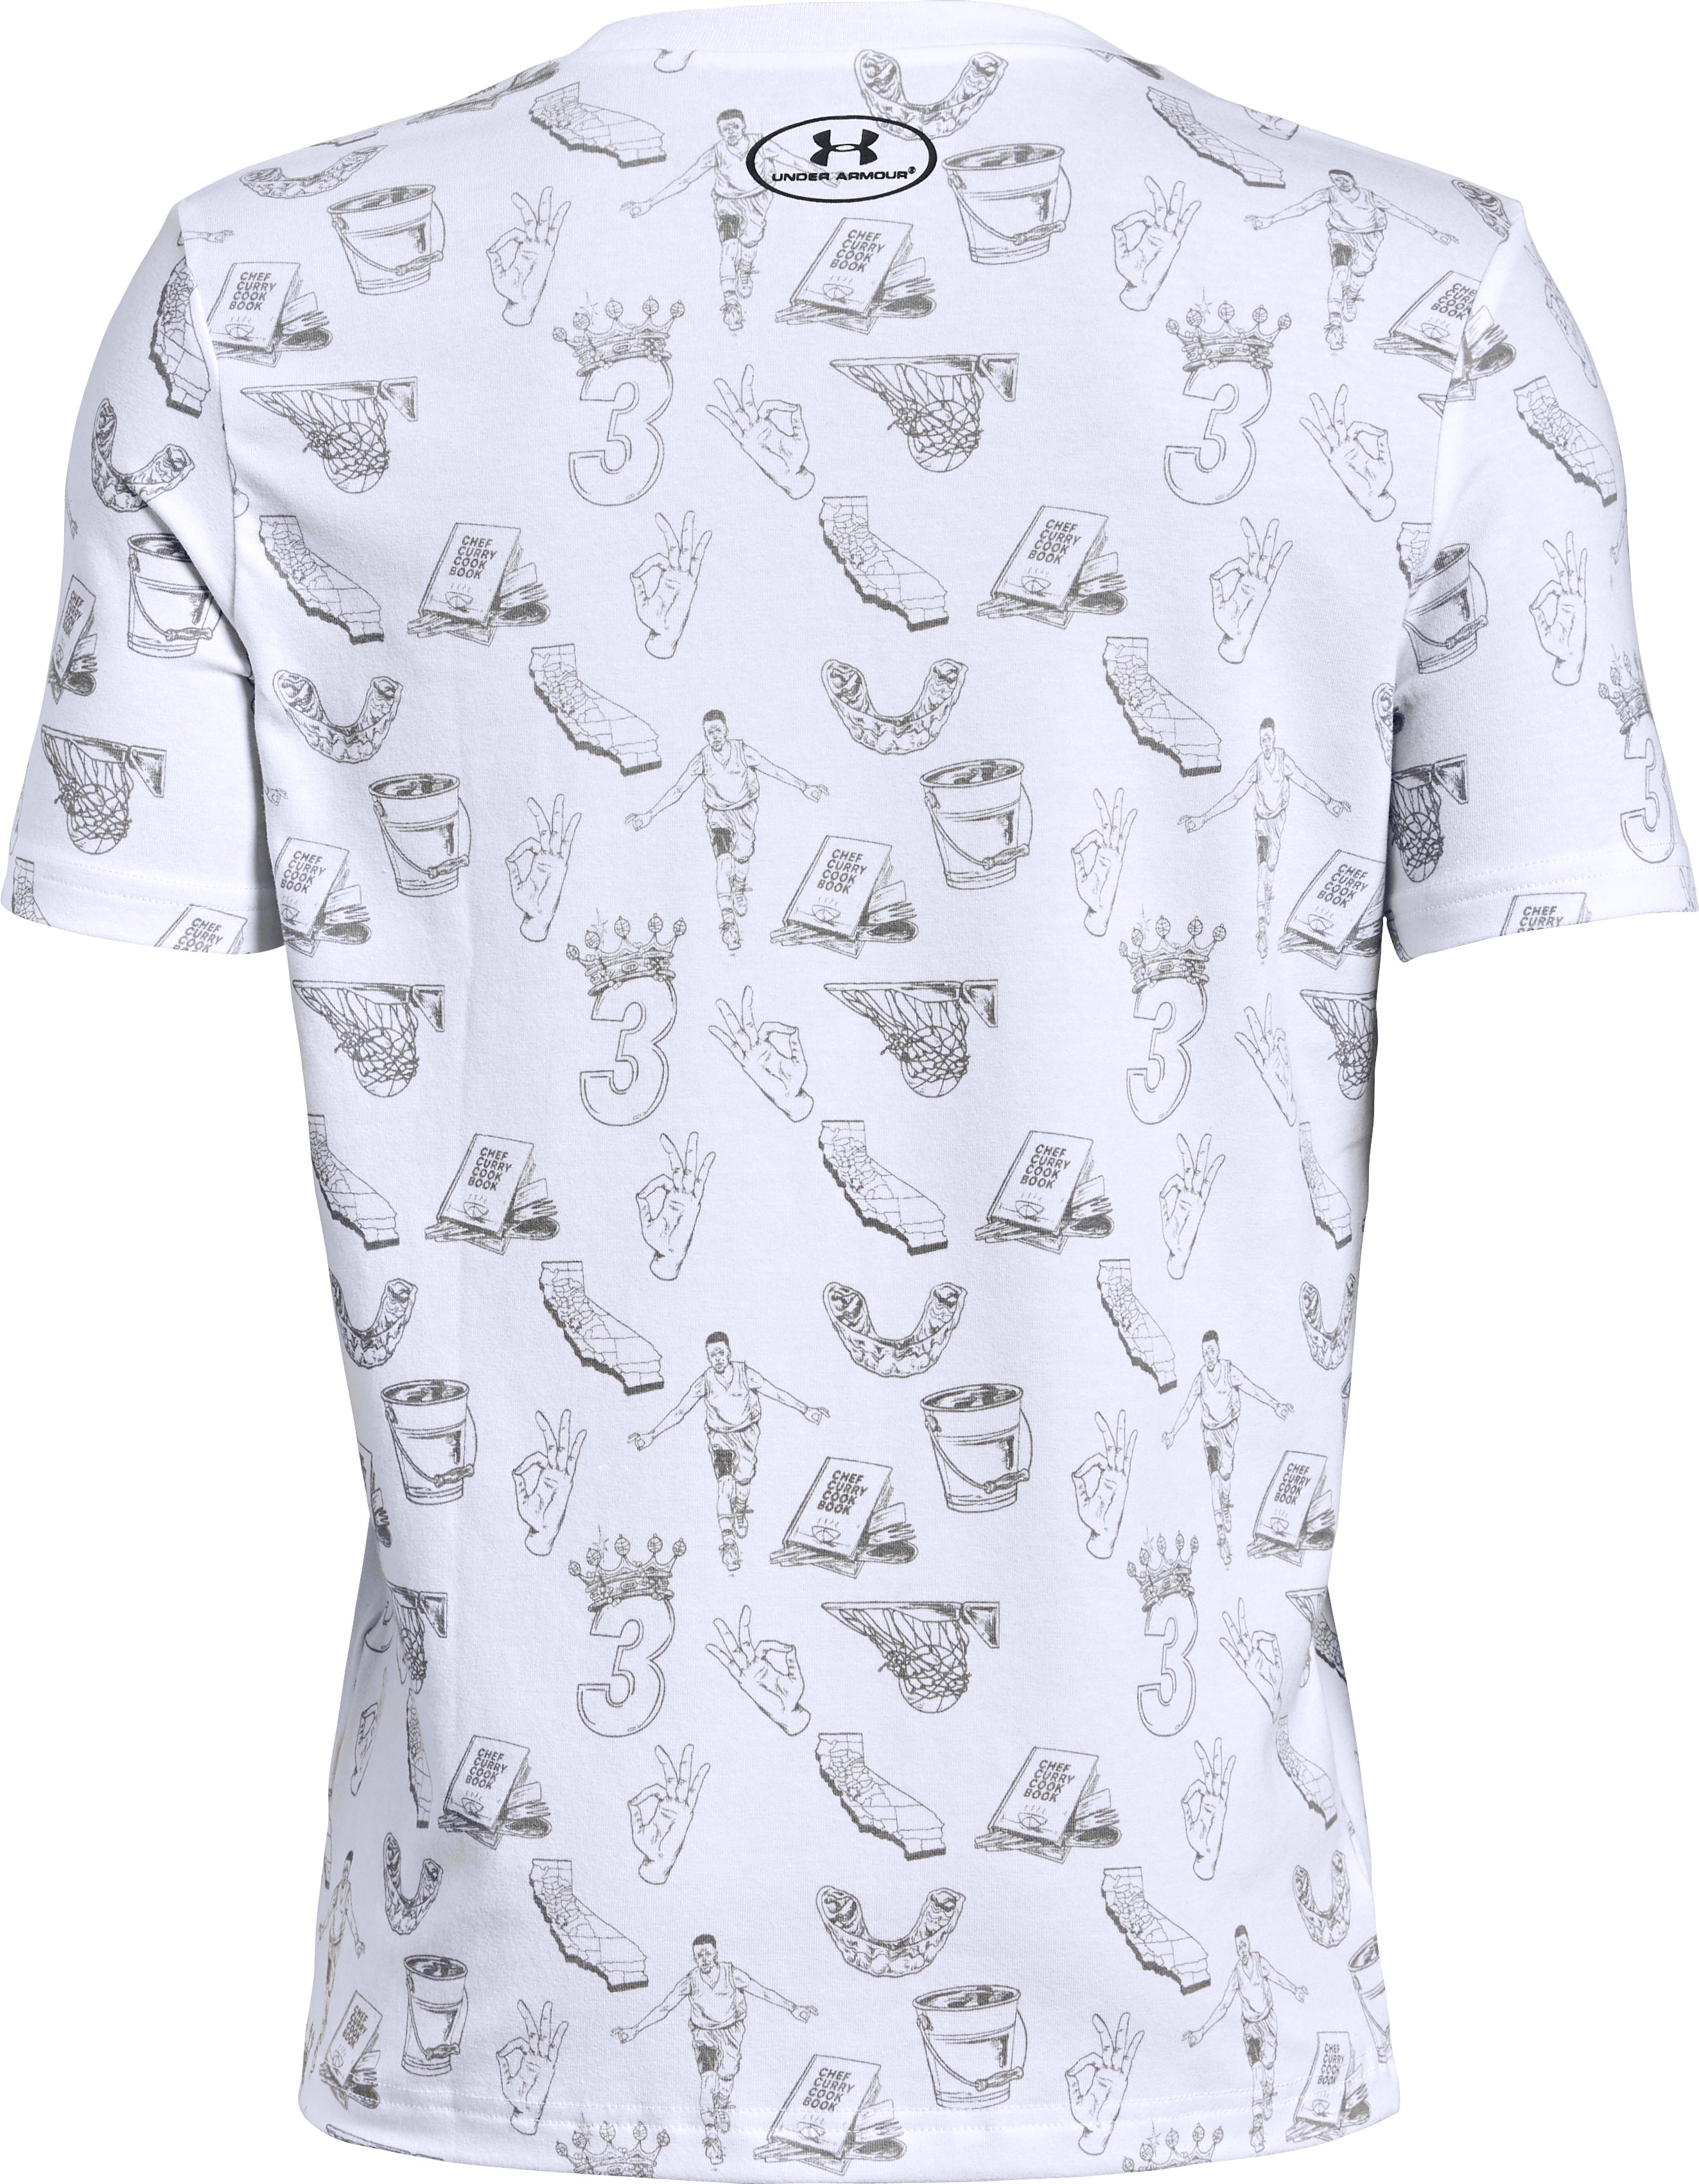 Boys' SC30 Printed Short Sleeve T-Shirt, White,